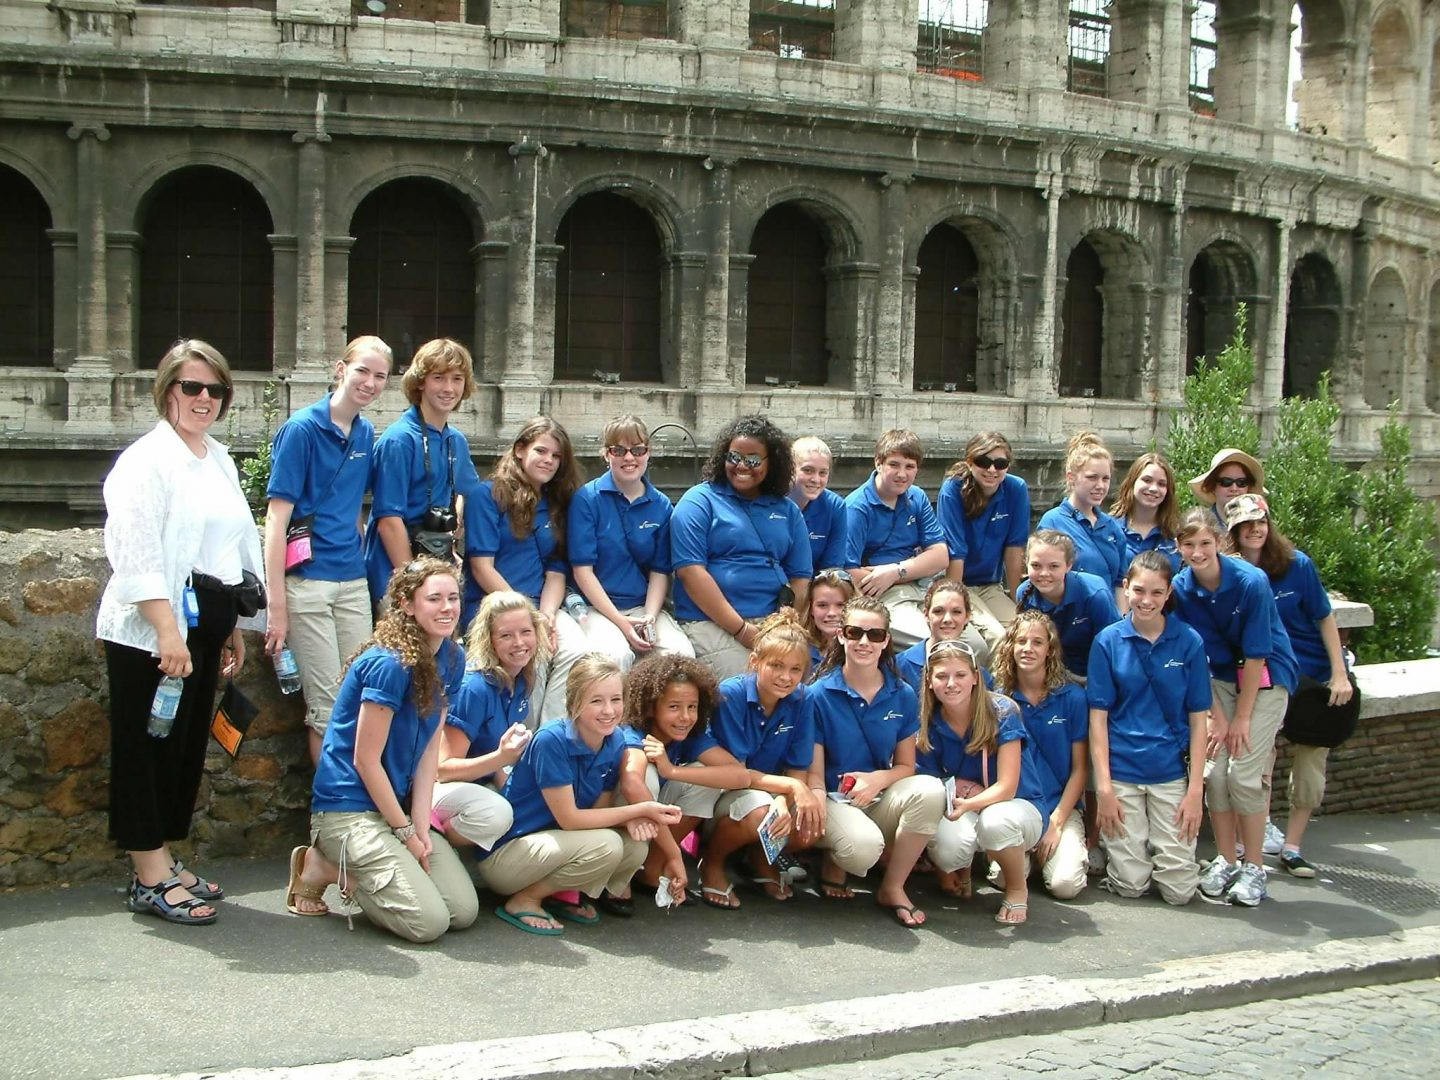 Encore Touring Choir at Colosseum, Rome, Italy 2007